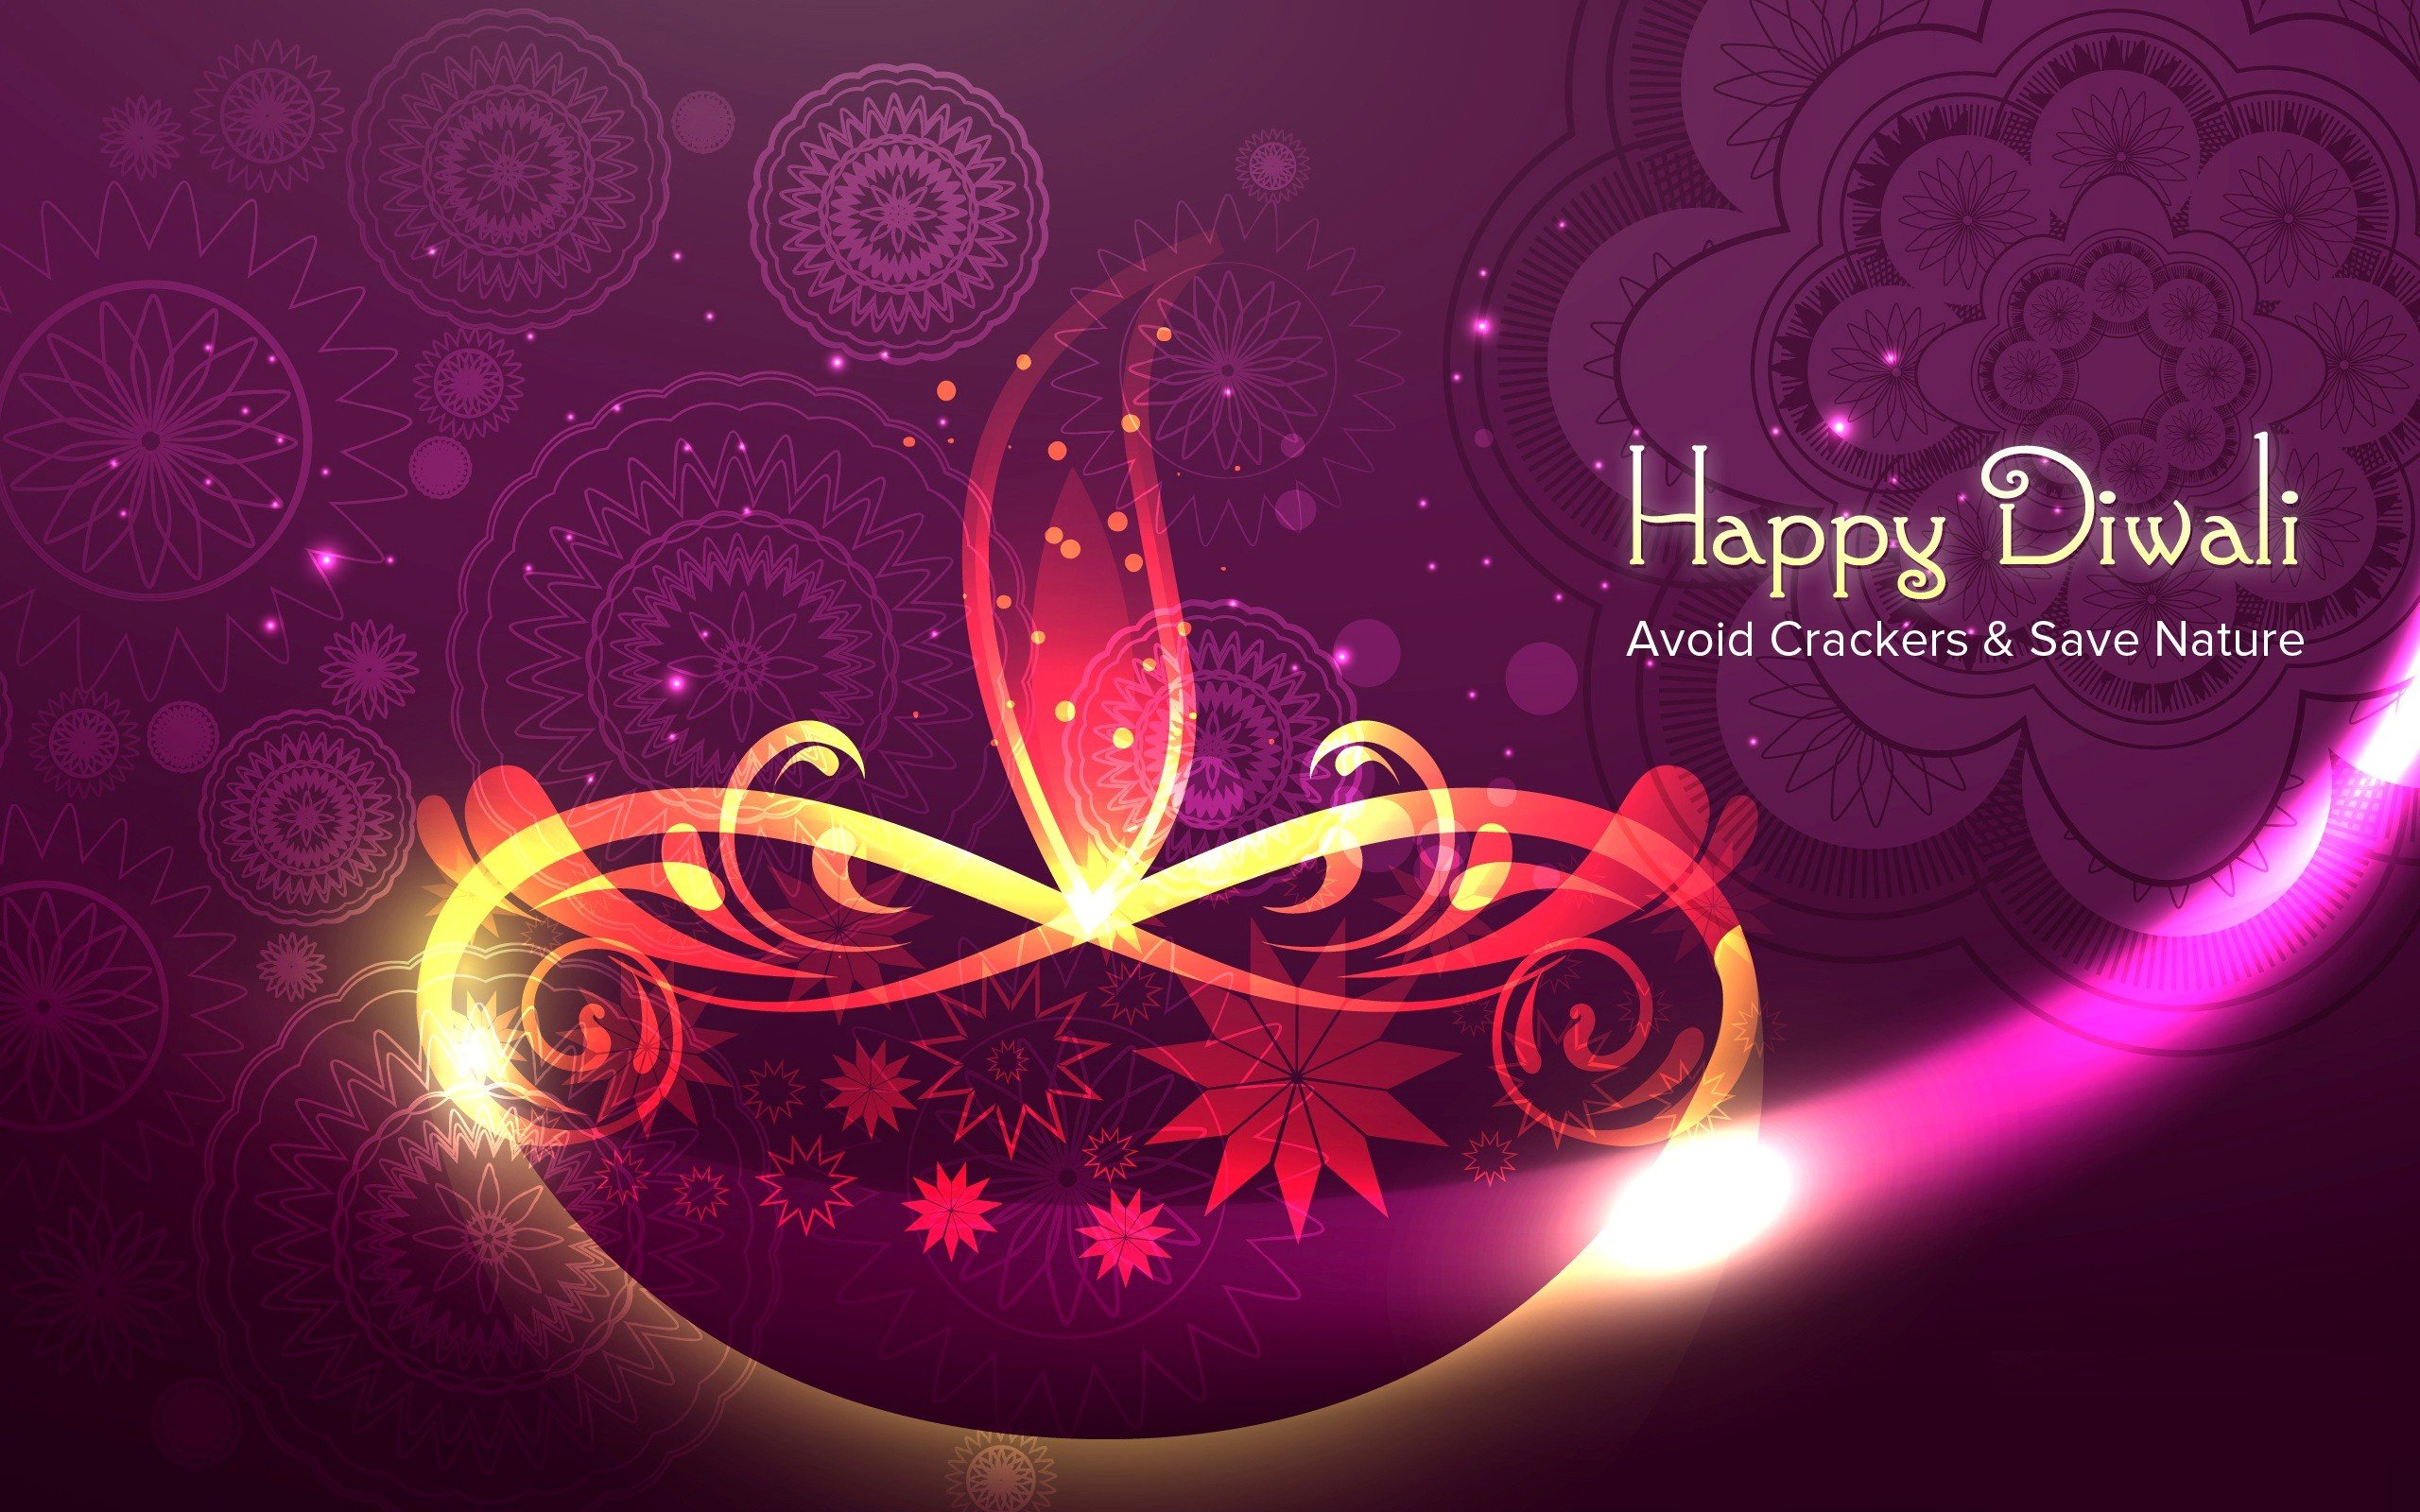 Diwali HD Images For WhatsApp